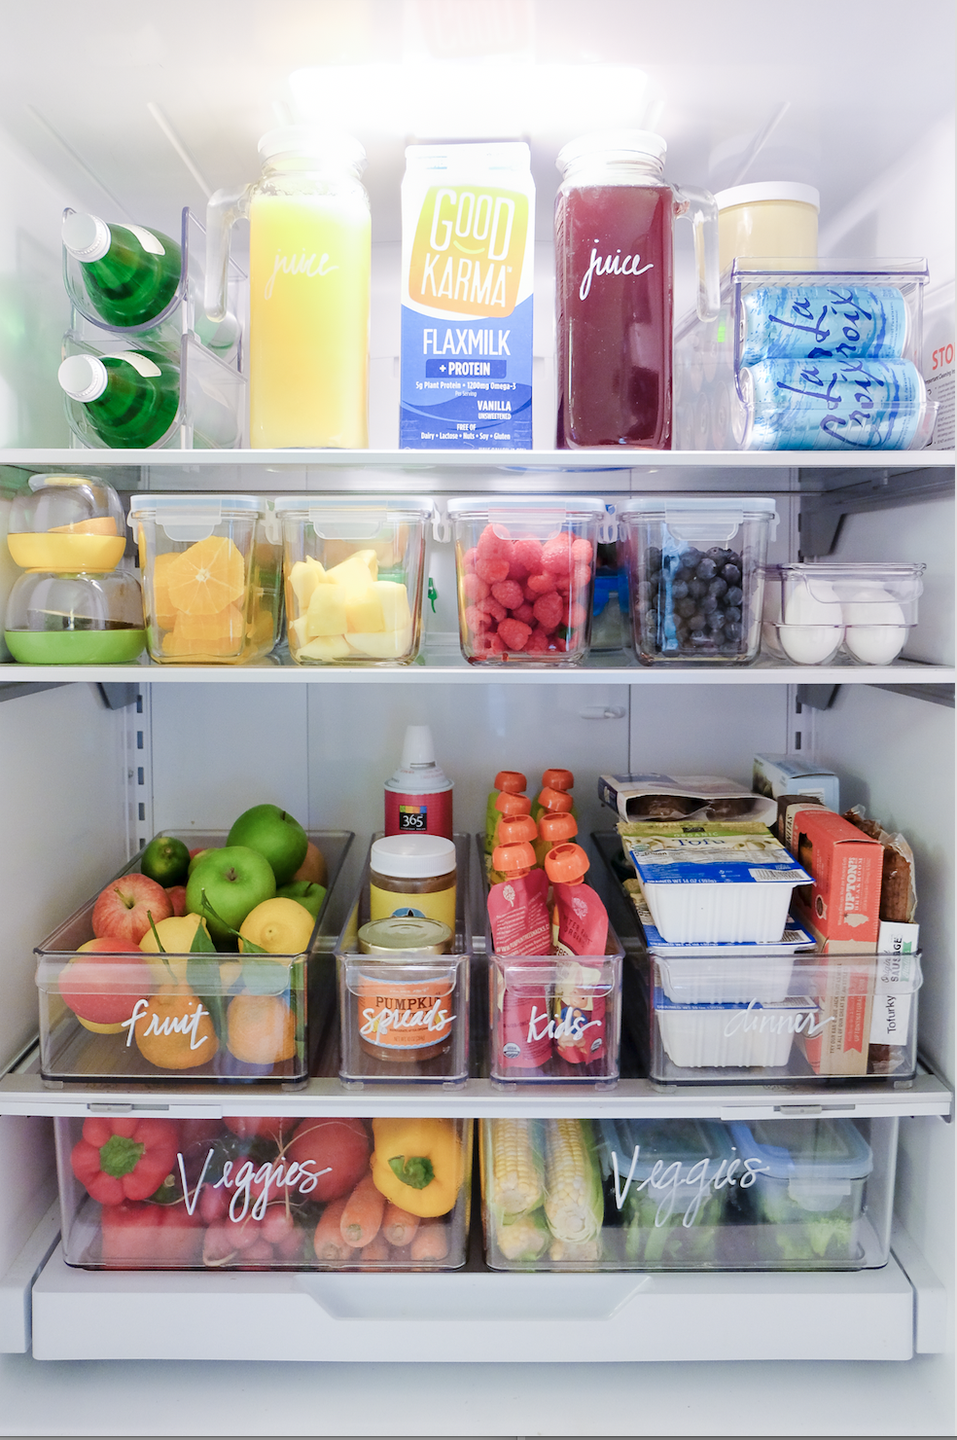 Here's How Your Fridge Can Look Like Khloé Kardashian's